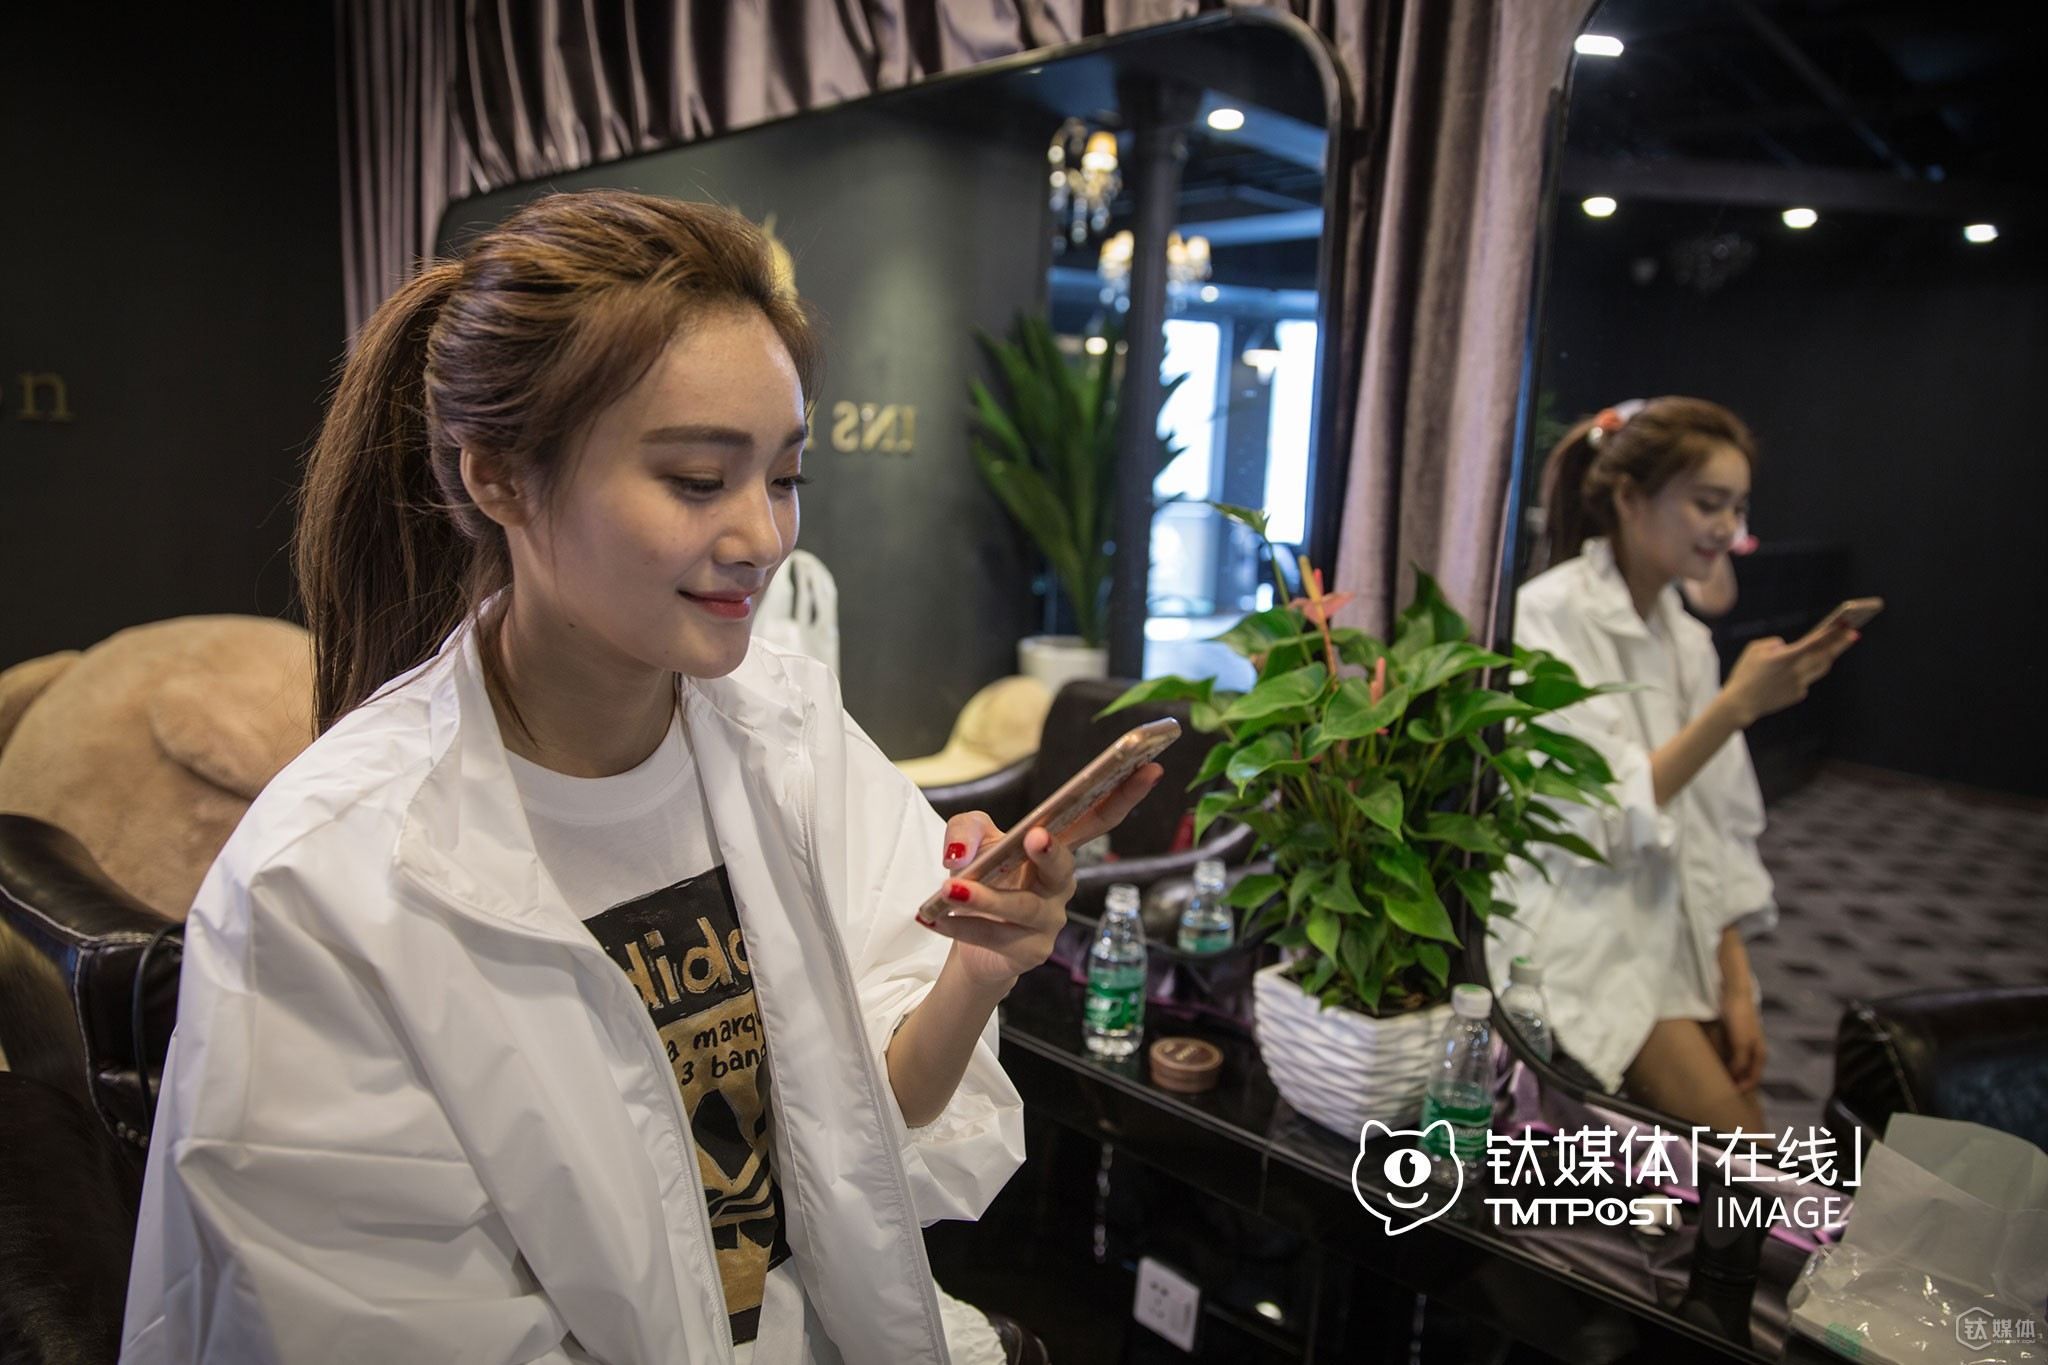 She also gains a lot of consumers by live broadcasting videos, so she would often answer questions about her products through live video broadcasting platforms. She had two WeChat accounts, one is personal, and the other is for business usage, mainly related to maintaining her online shop on WeChat. When live broadcasting videos about doing makeups, some fans would ask her opinions about cosmetics, and she would recommend to them cosmetics she often uses. If fans want to buy her products, she would contact with relevant personnel at the storage in Hangzhou and send the product to them.